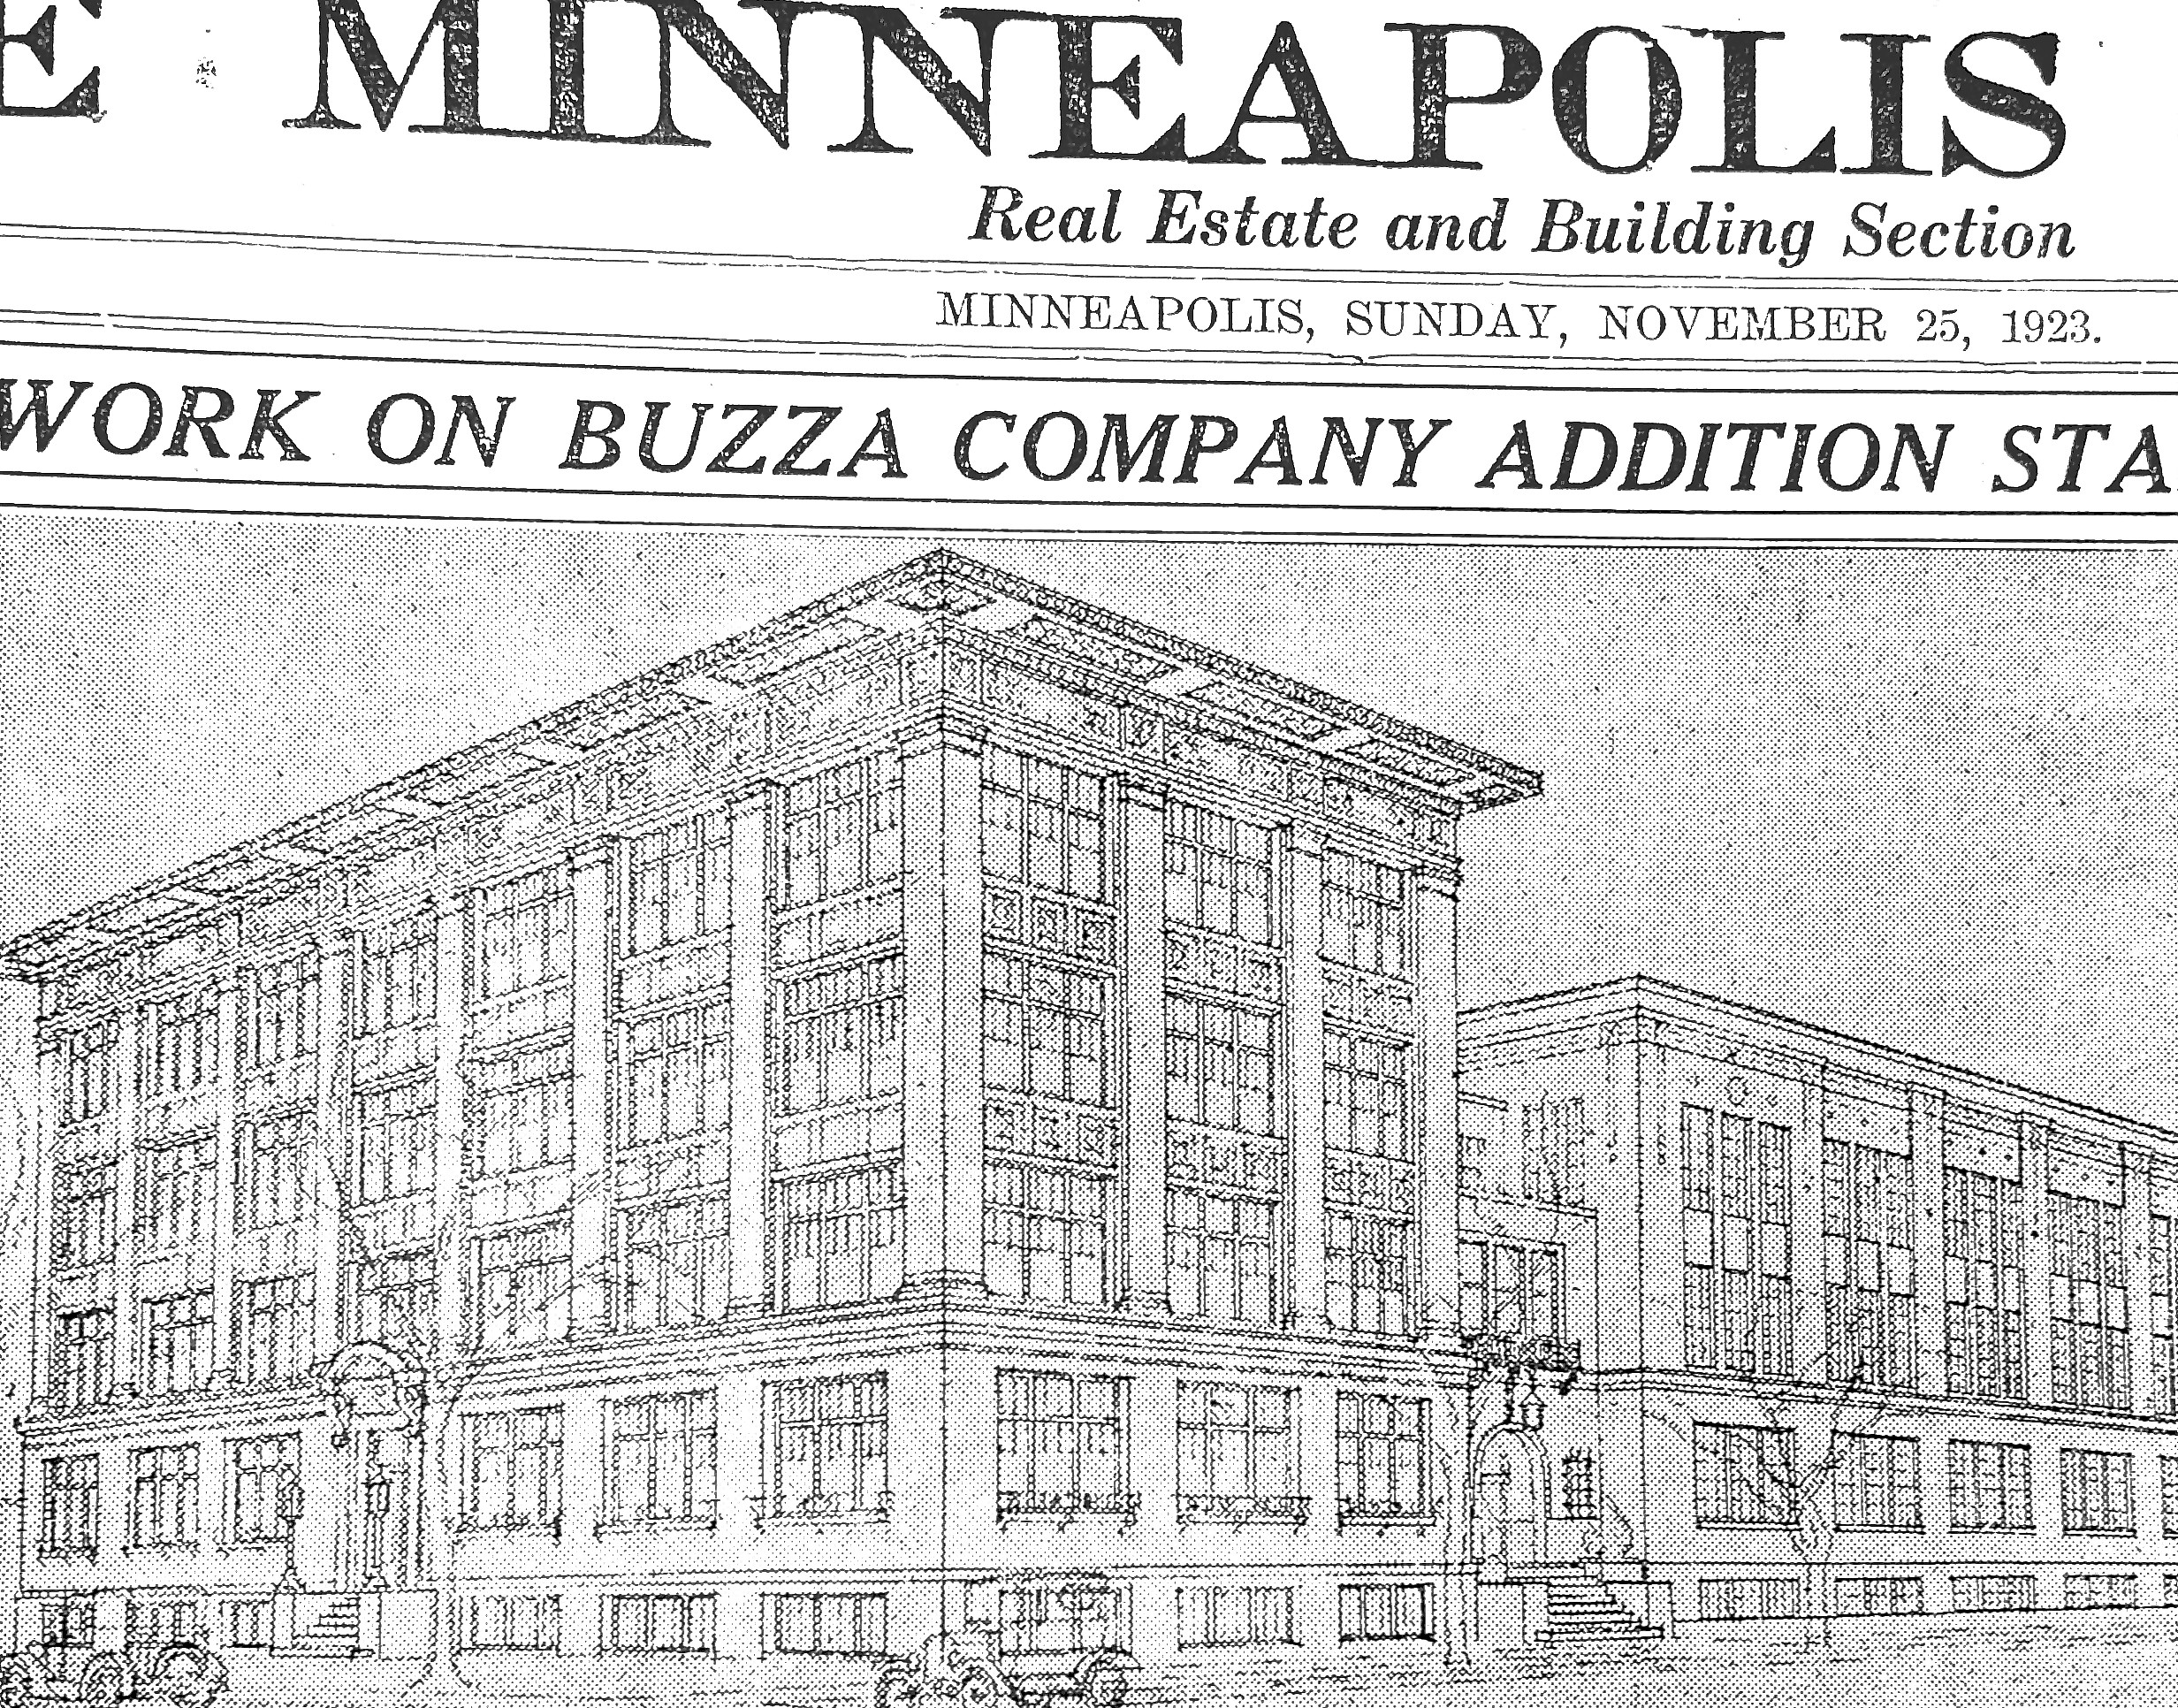 Minneapolis Tribune: Buzza Building